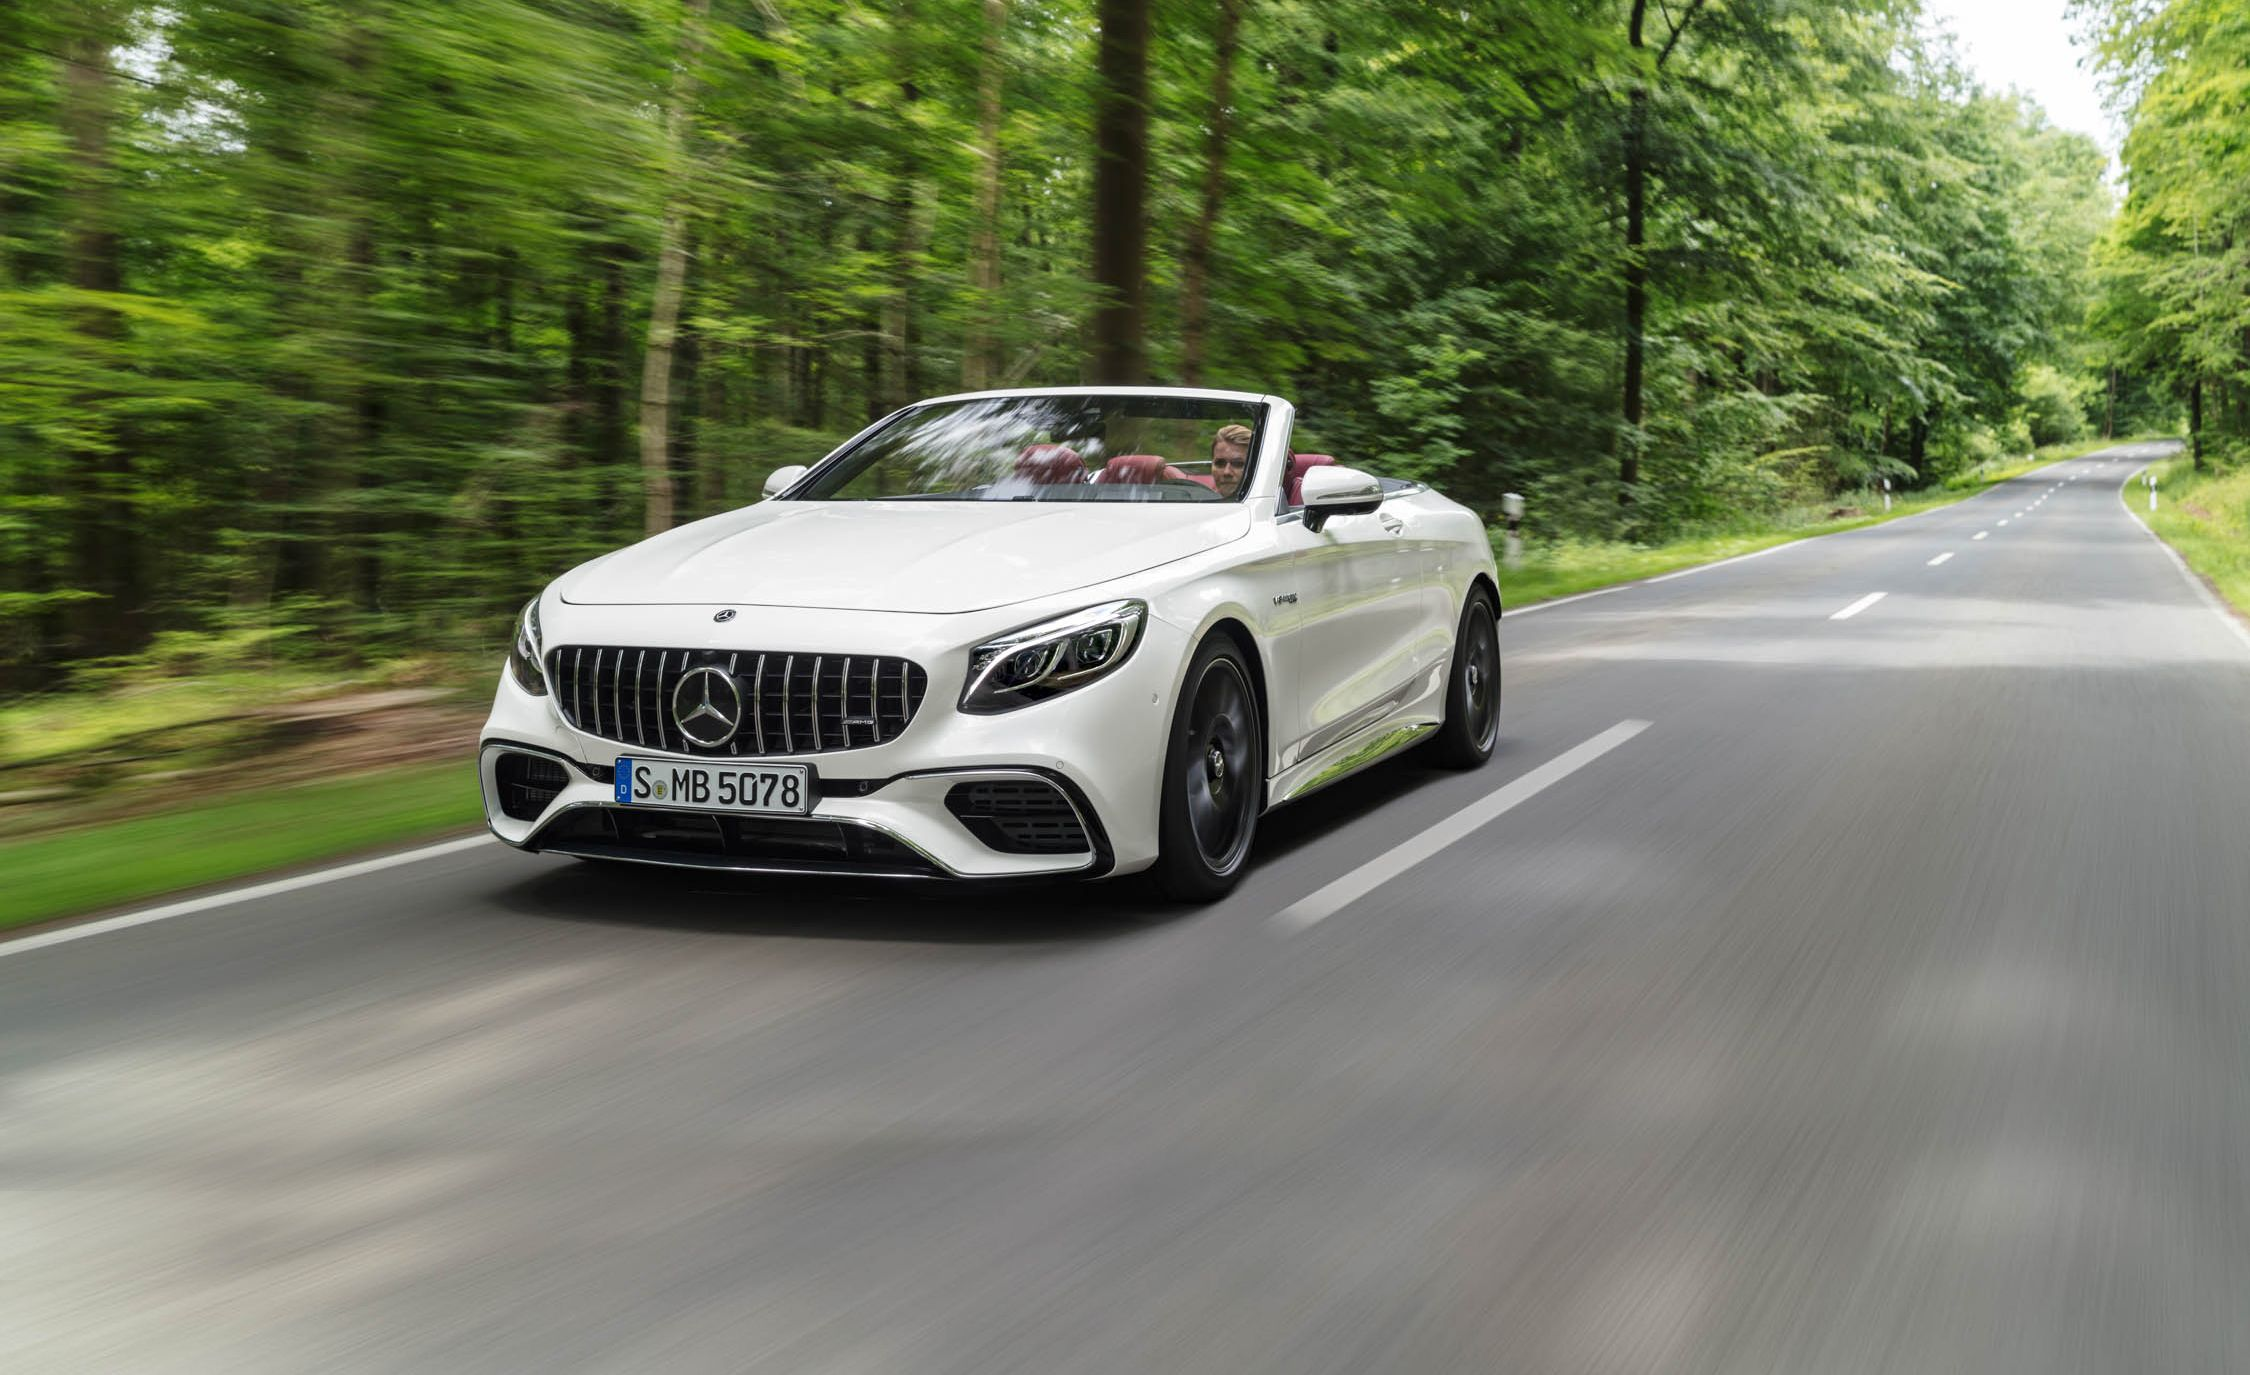 2015 Mercedes Benz S63 AMG 4MATIC Coupe Test Review